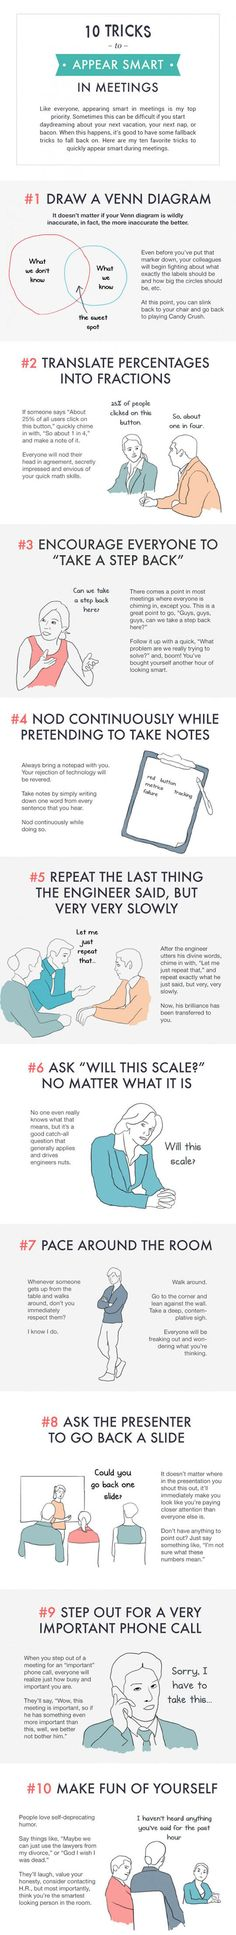 How To Appear Smart in Meetings